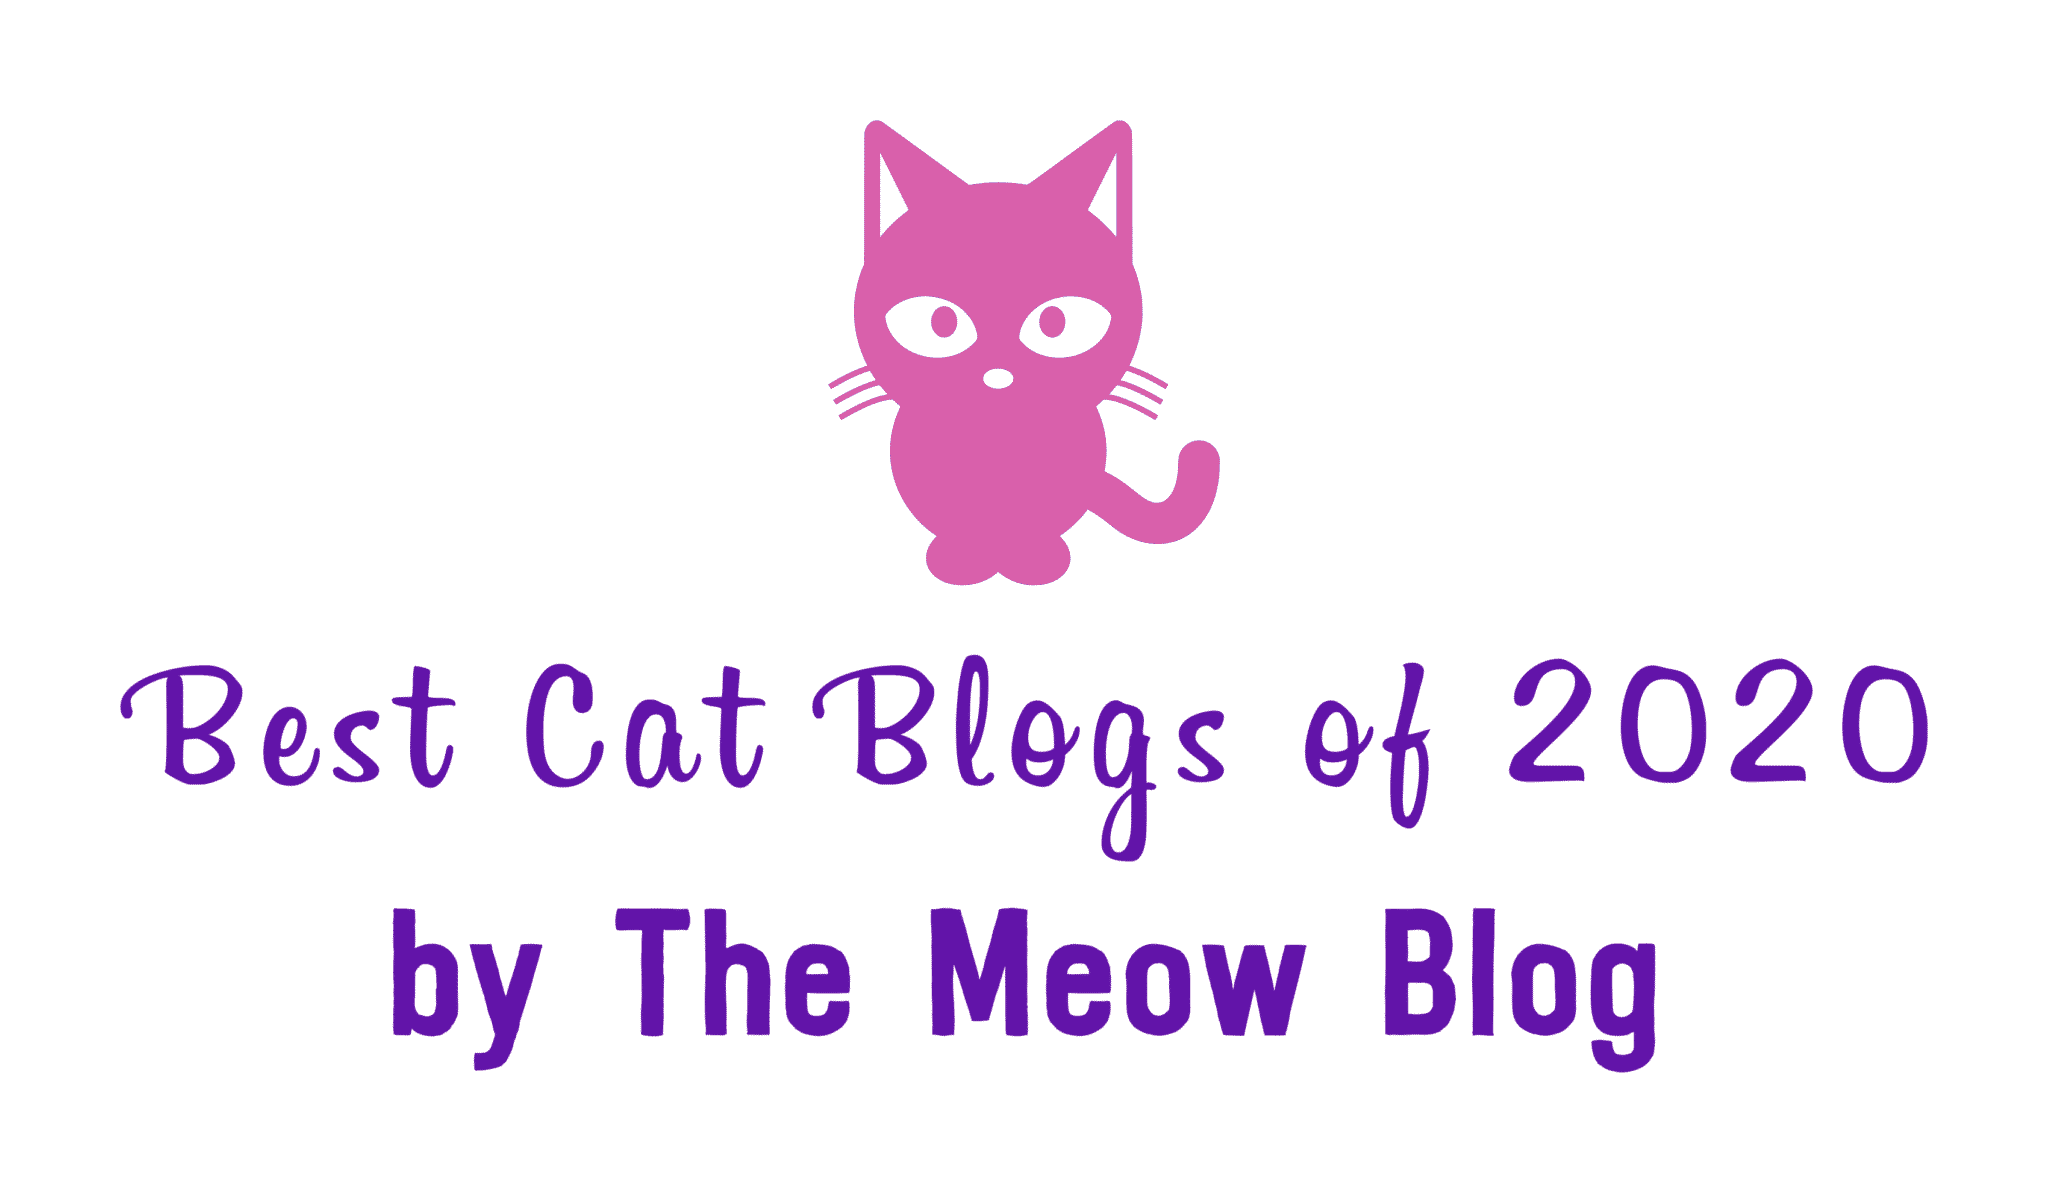 awarded top 100 cat blog